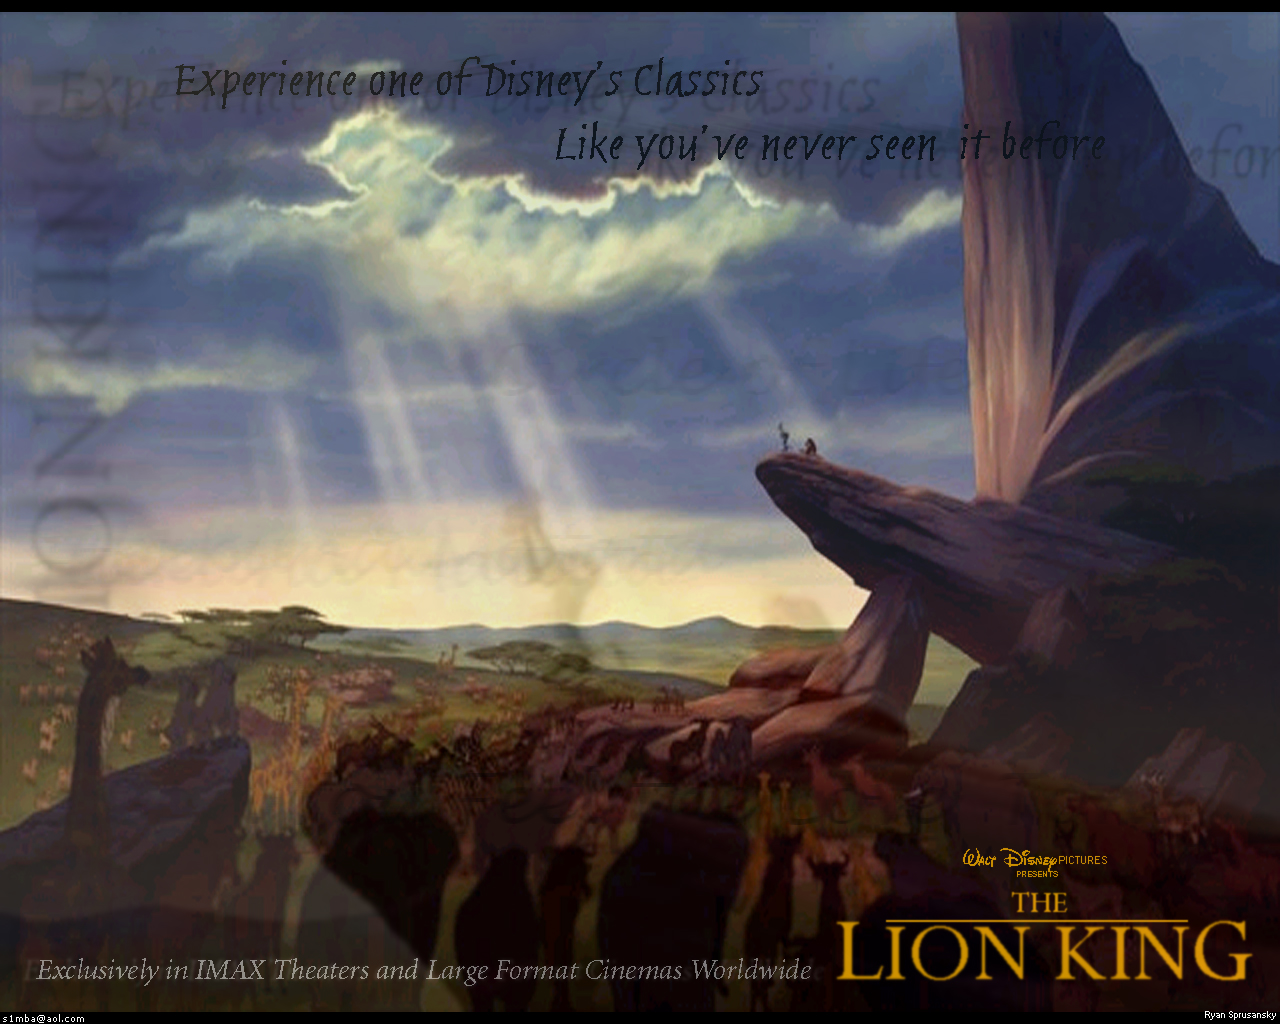 The Lion King images The Lion King wallpaper photos 541250 1280x1024